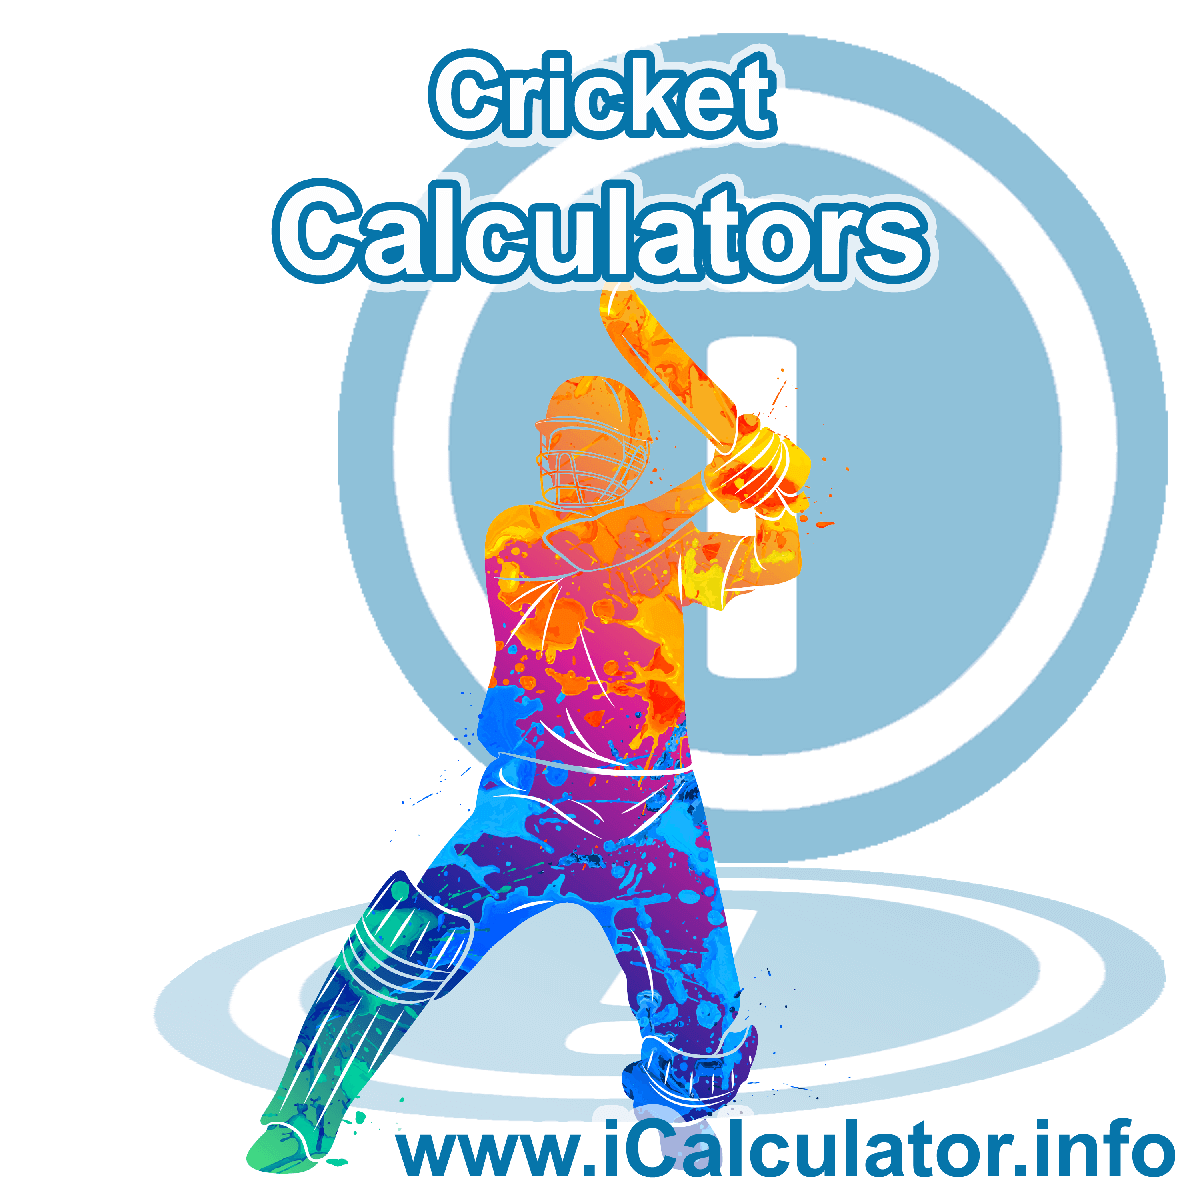 Cricket Calculator. This image shows an Cricket player playing cricket - by iCalculator